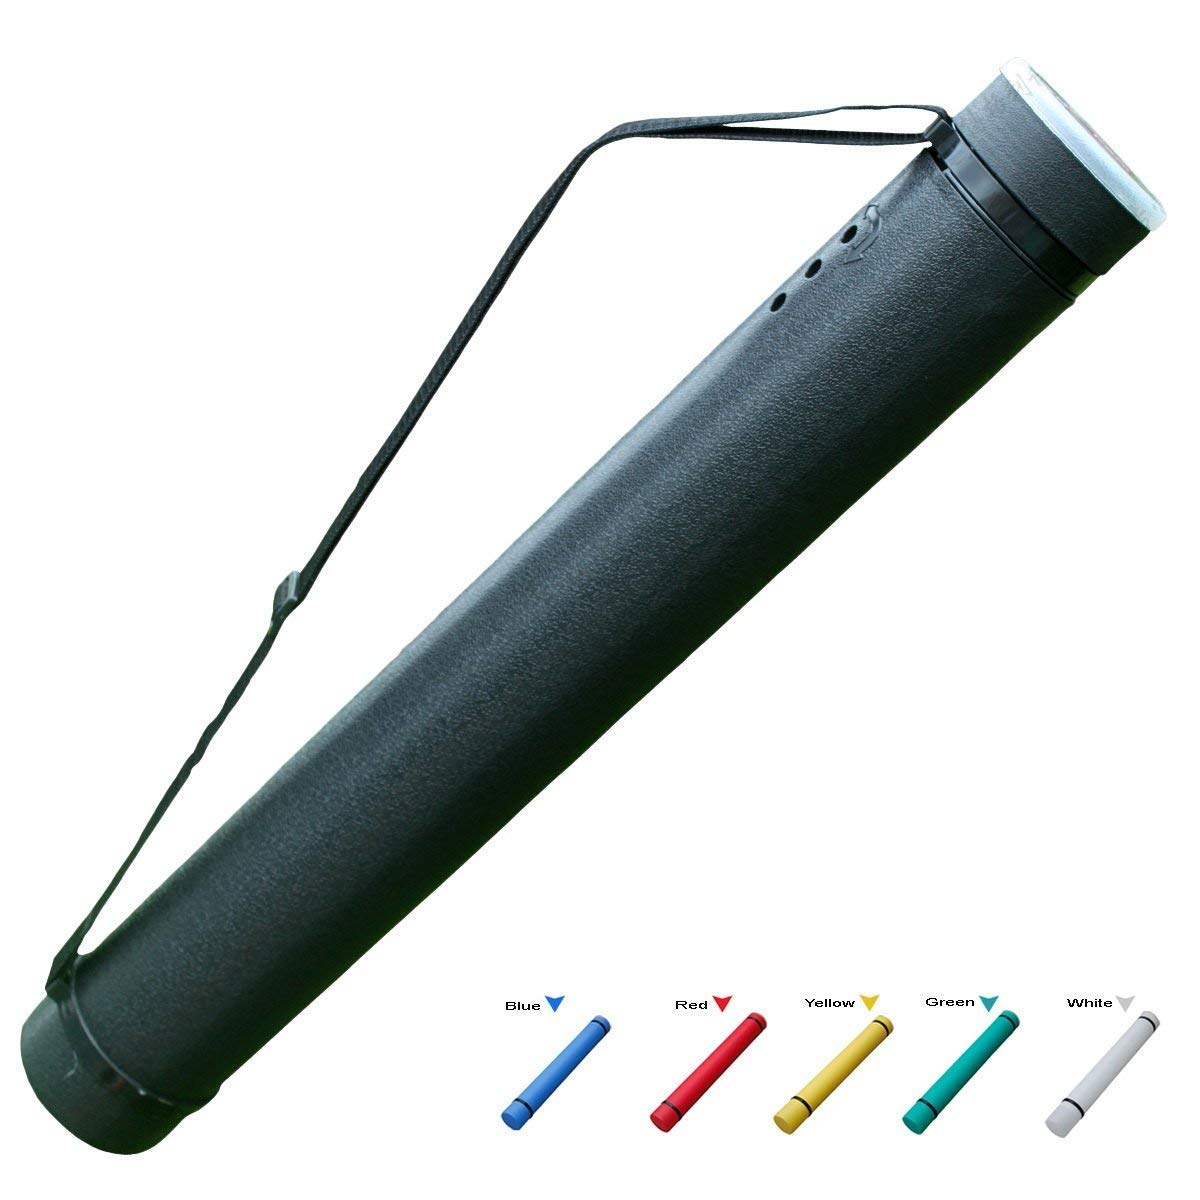 MailingArt Expanding Document Poster Tube 24.8 Inches up to 40 Inches - 3.5'' Diameter Water Light Resistant - Telescoping Posters, Artwork Drawings by MailingArt (Image #6)